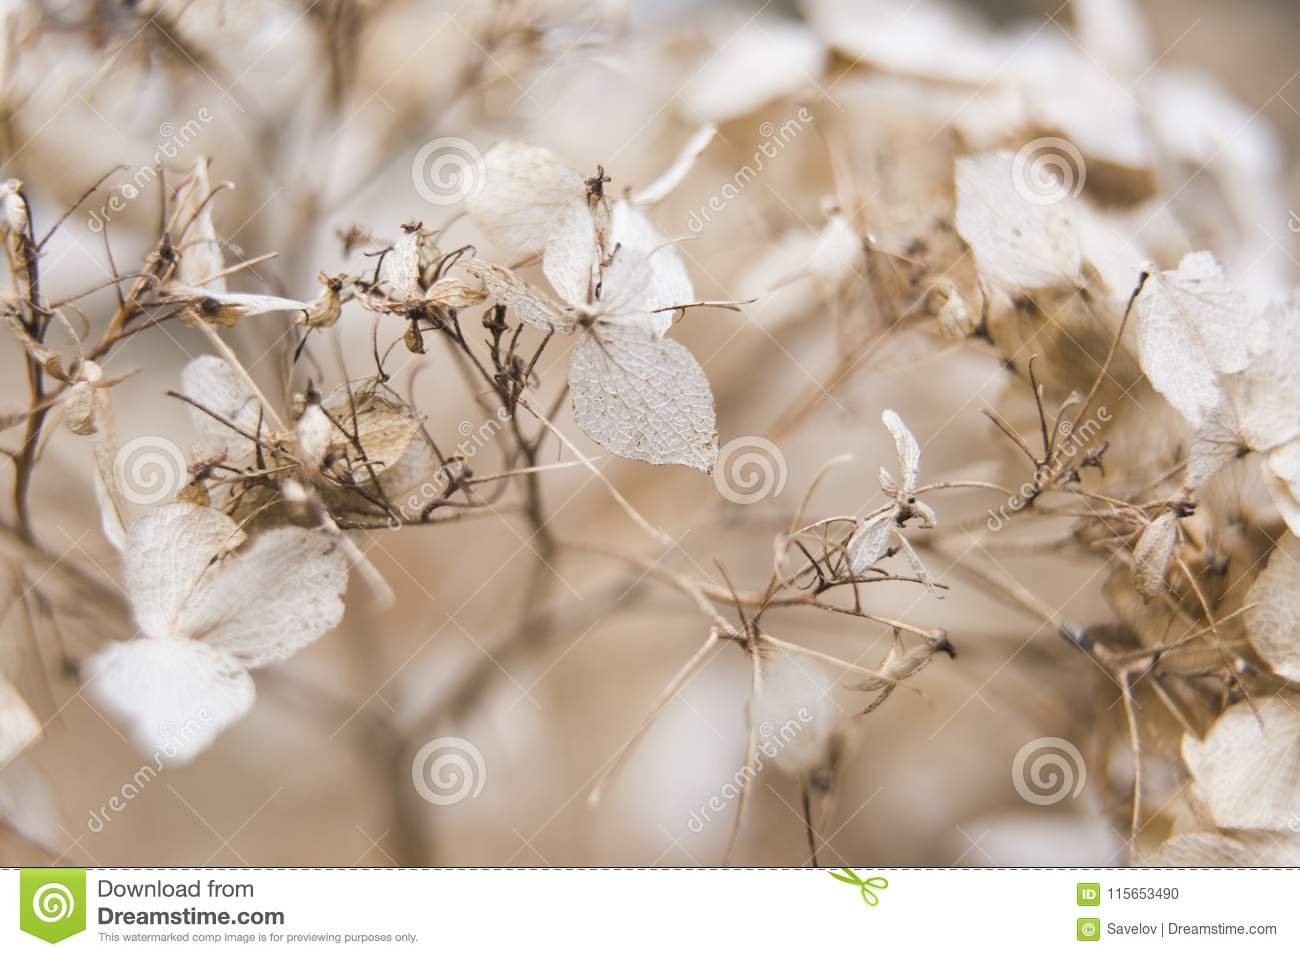 Delicate Background Of White Dried Flowers Is Macro Stock Photo